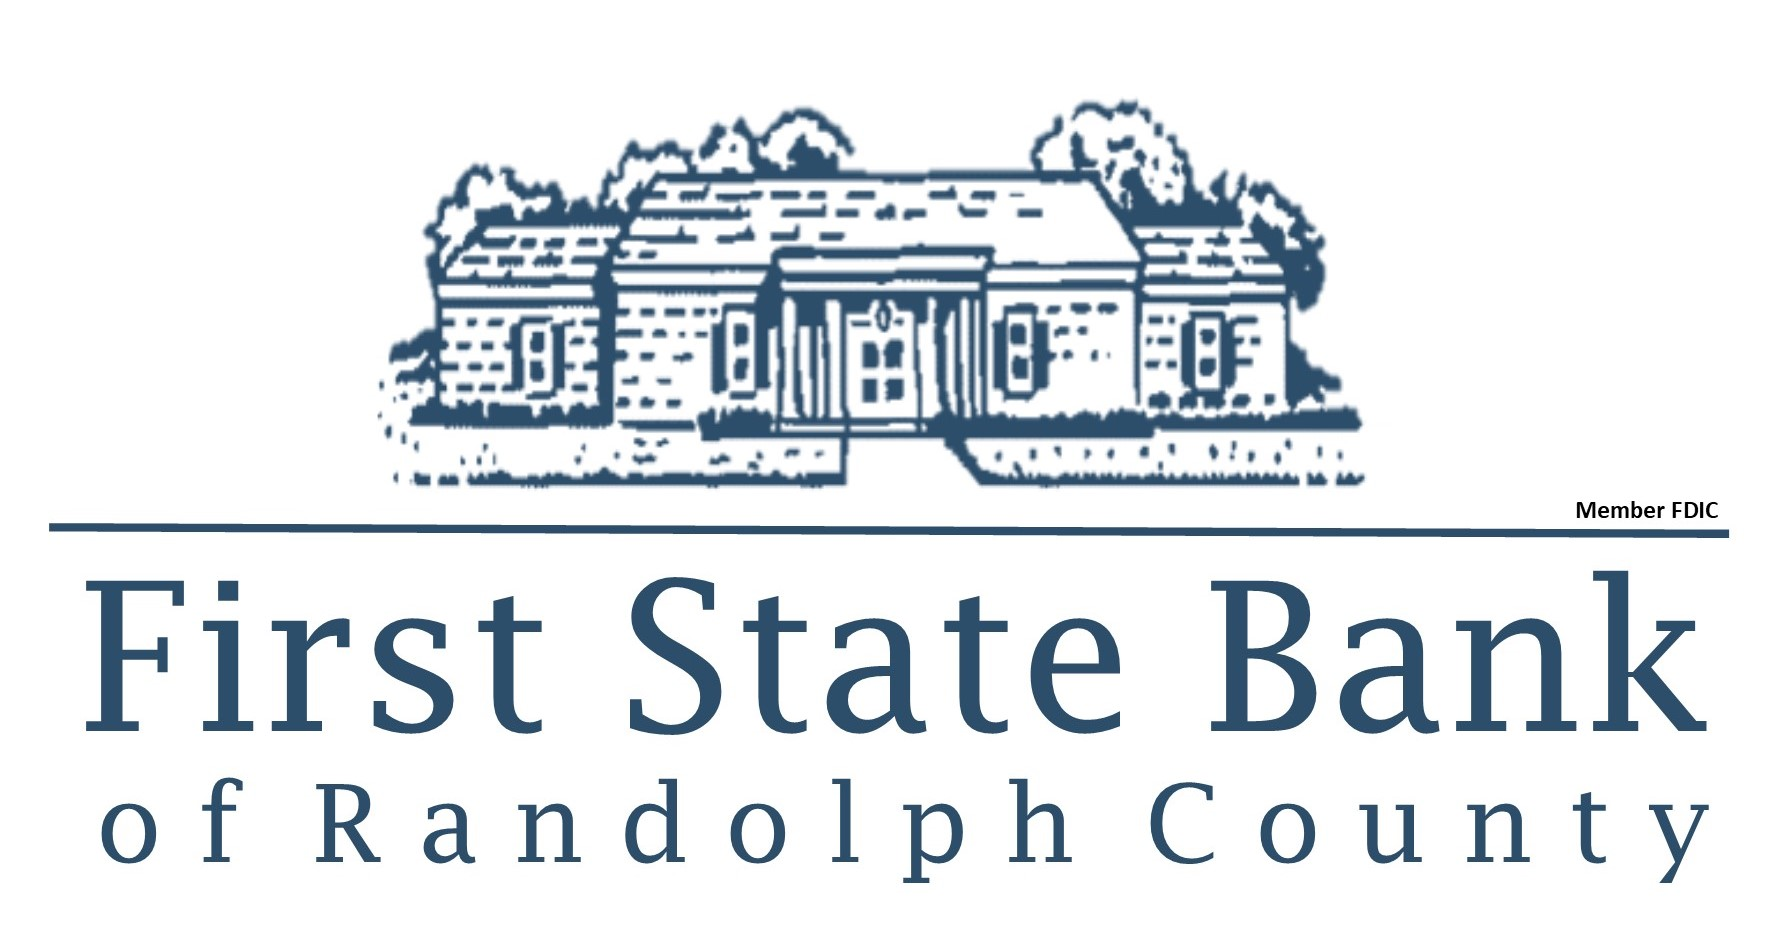 First State Bank of Randolph County